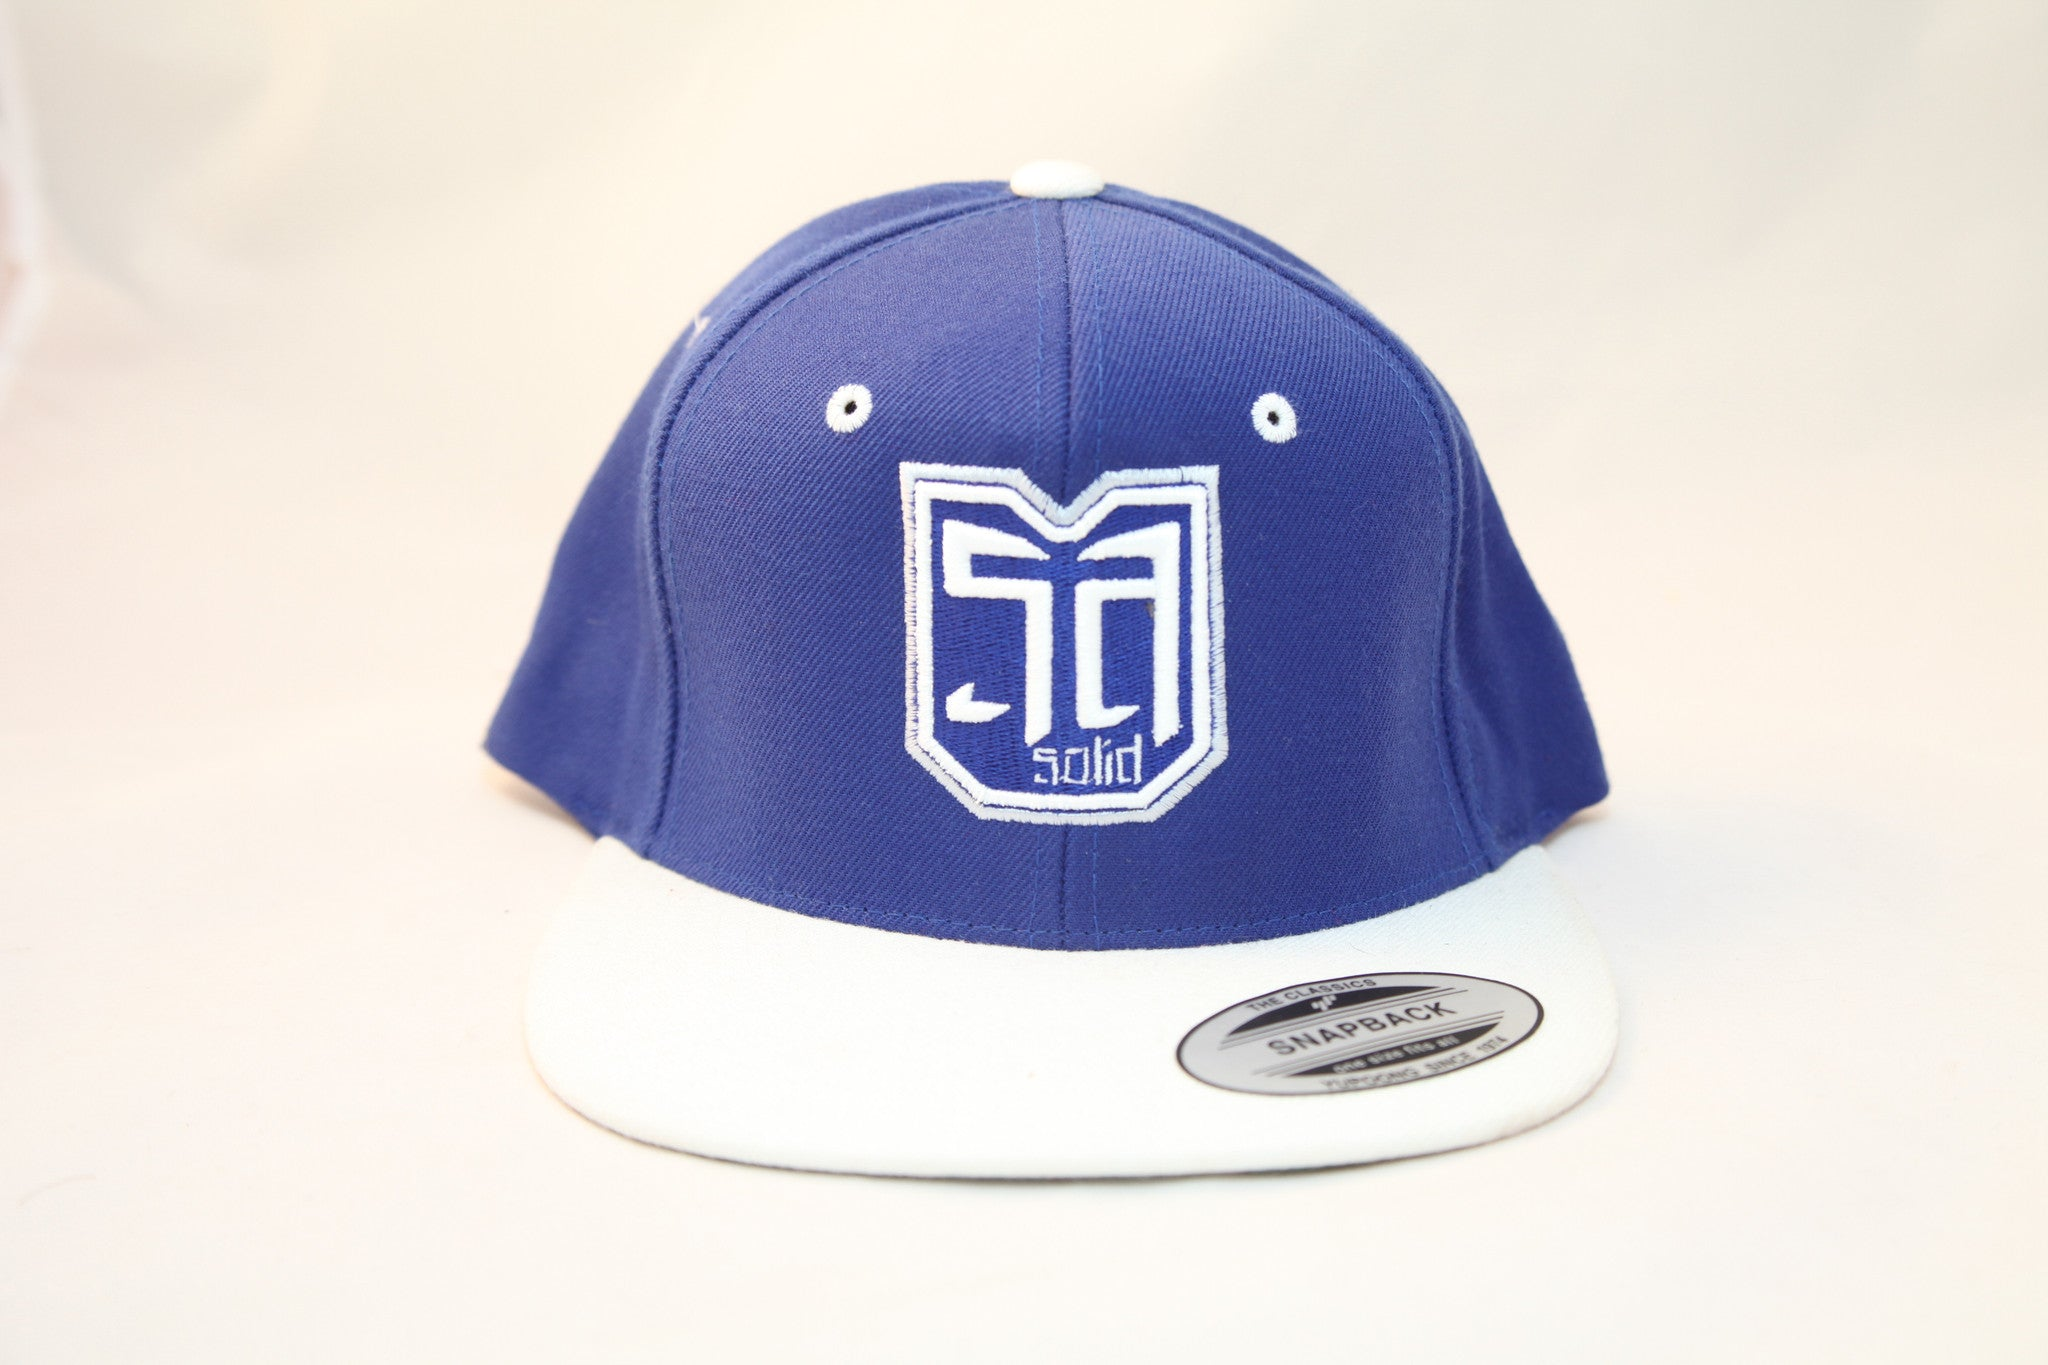 AV8 SHEILD - SNAP BACK - BLUE / WHITE - WHT / BLU LOGO